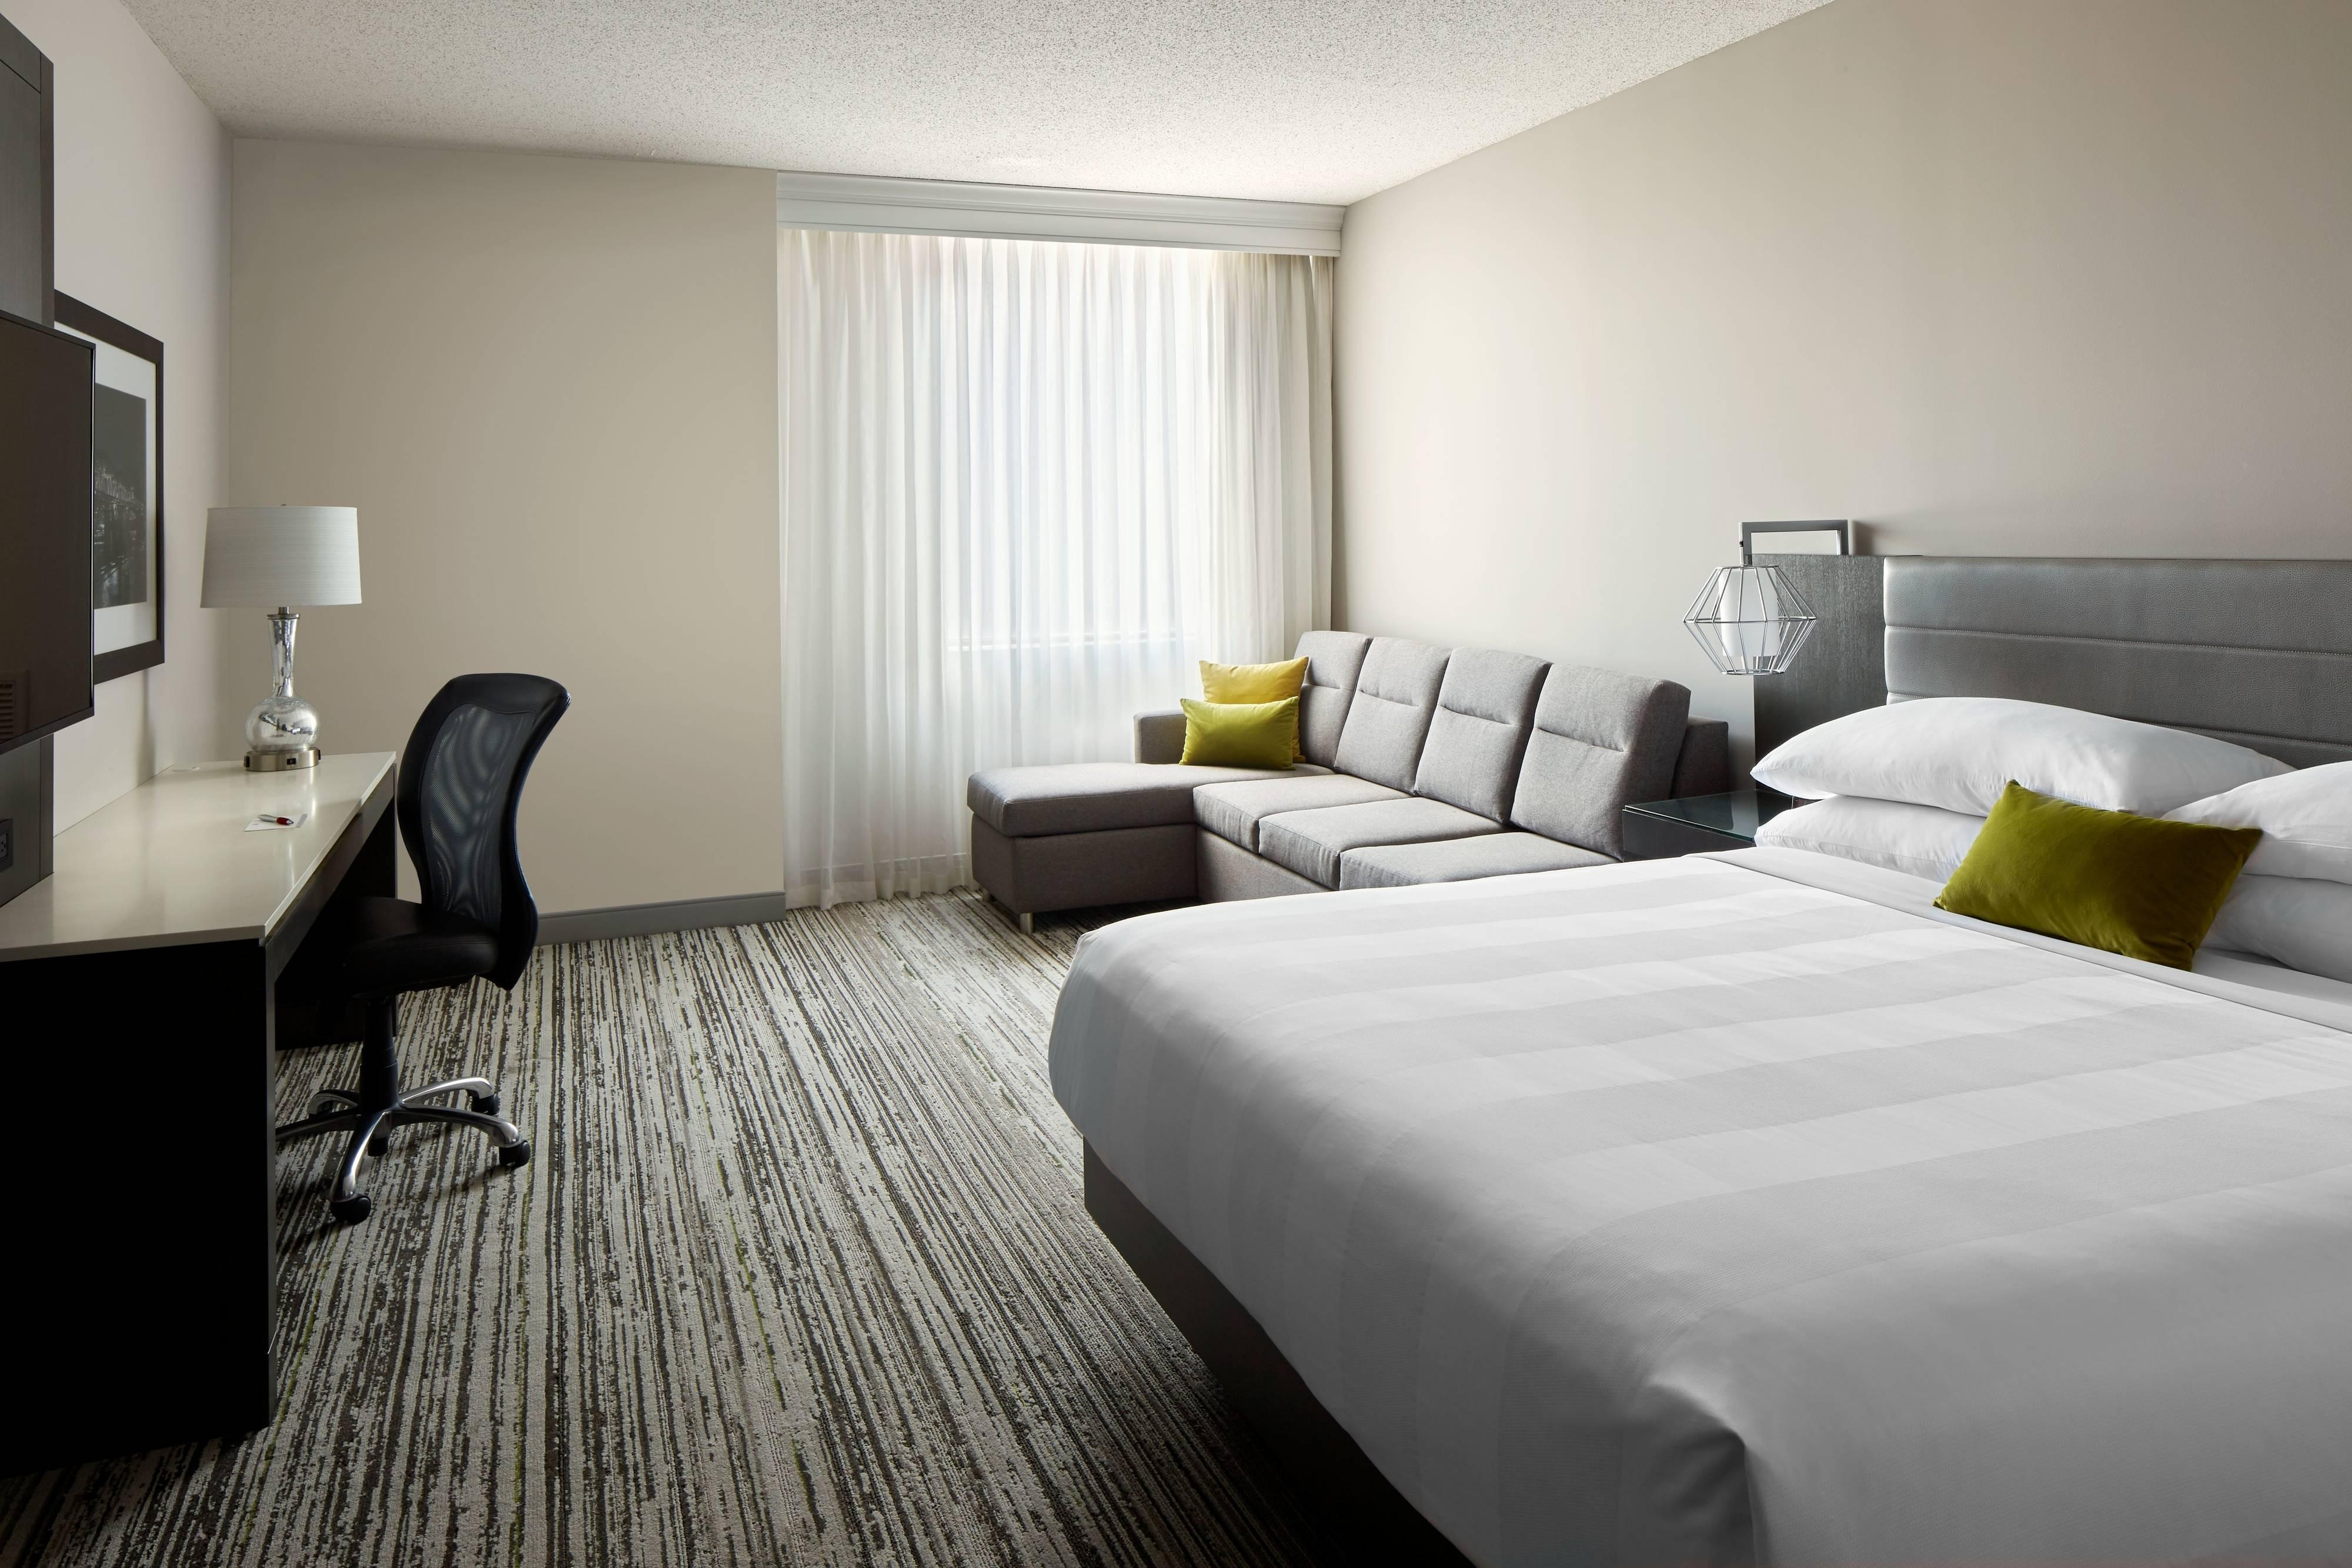 cincinnati ohio hotels cincinnati marriott northeast. Black Bedroom Furniture Sets. Home Design Ideas